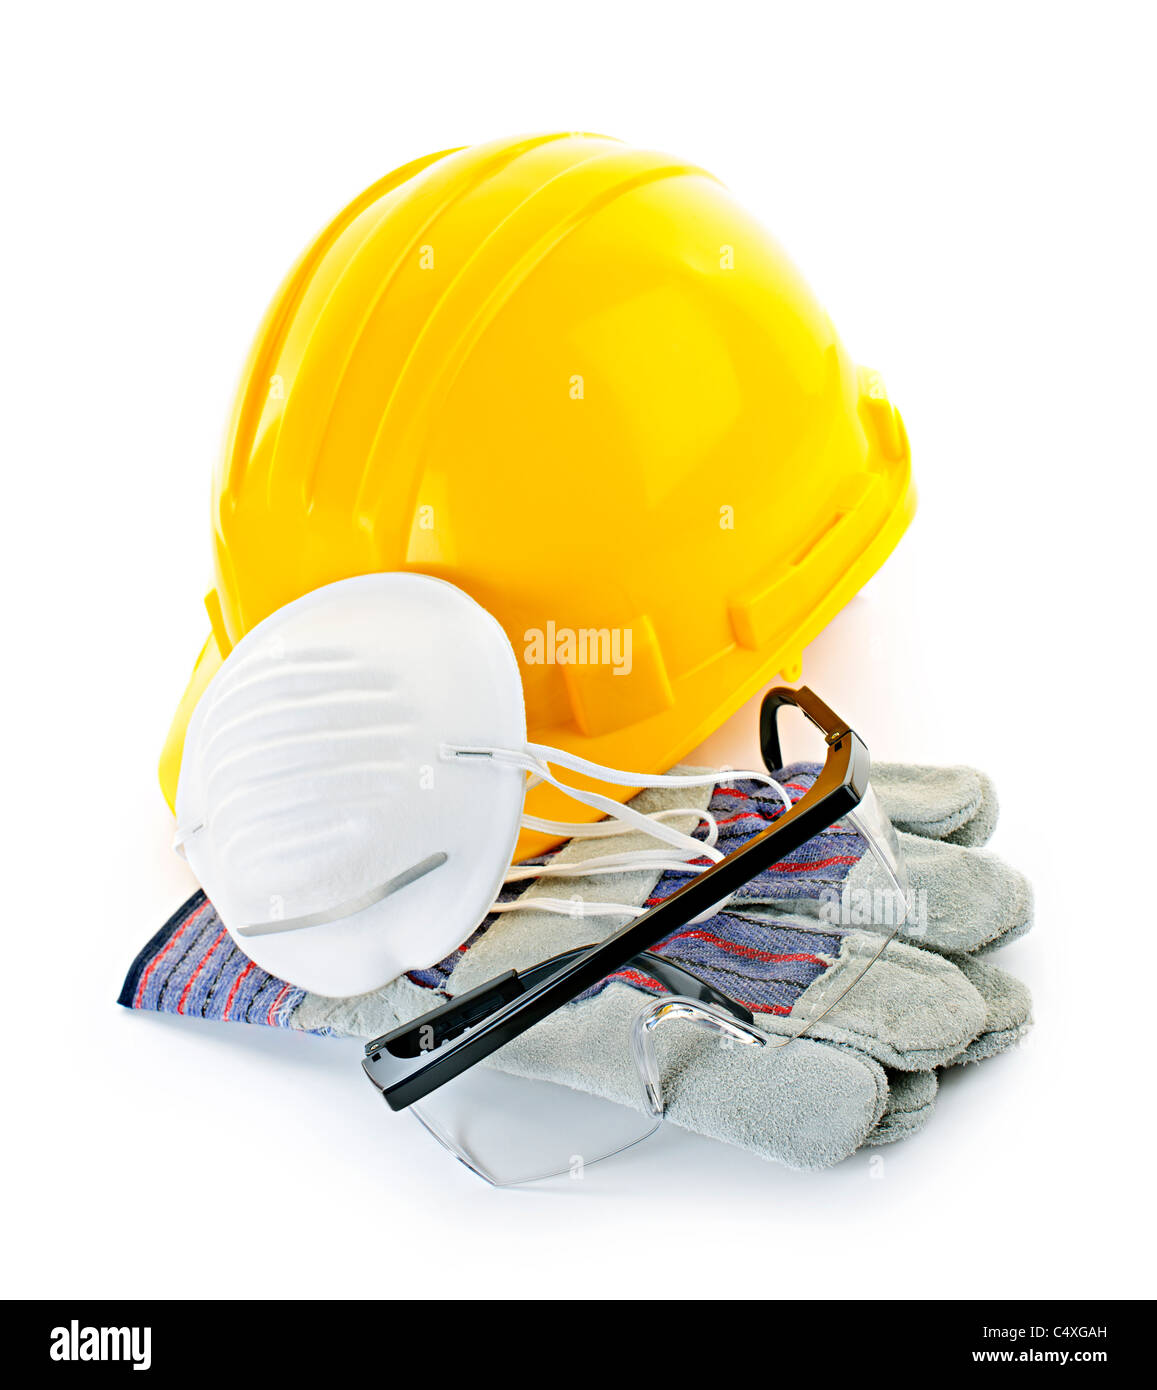 Construction safety equipment with hard hat, respirator, goggles and gloves isolated on white - Stock Image